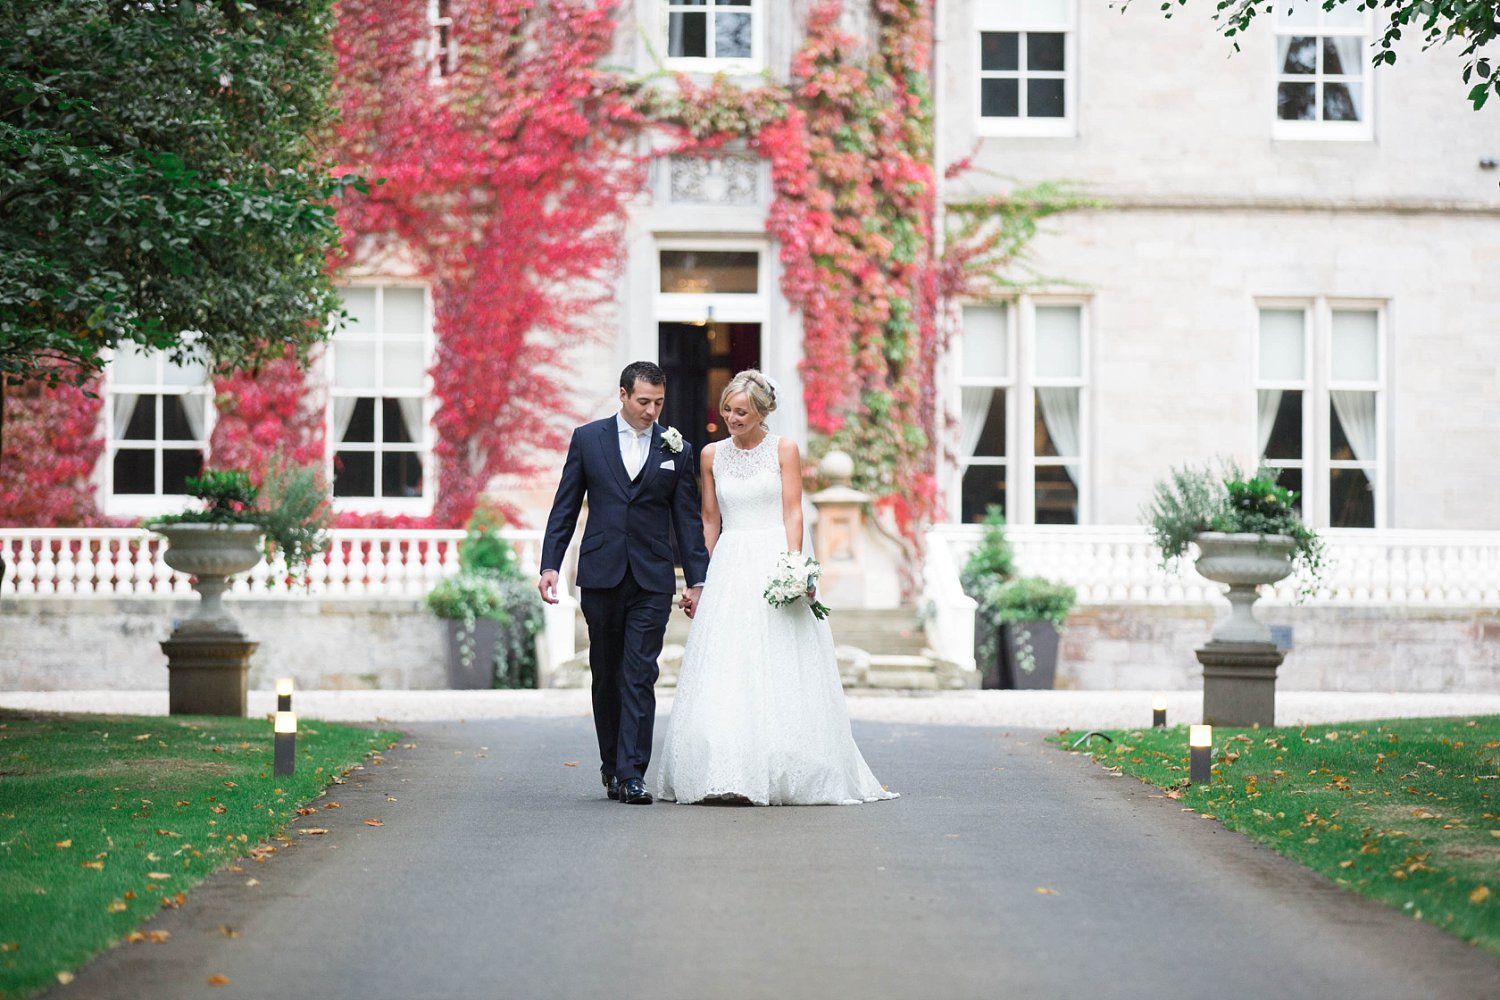 Bride in Caroline Castigliano gown at Carlowrie Castle Wedding Photo